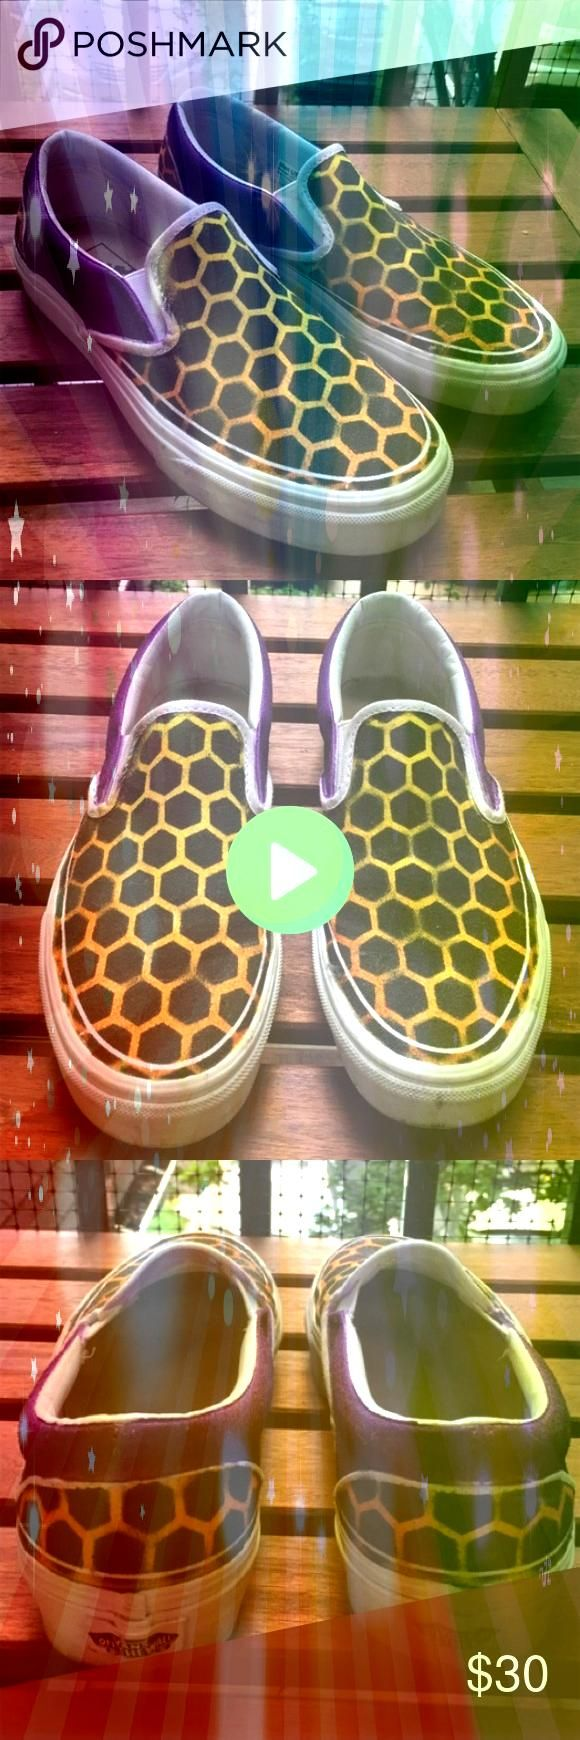 Things yellow vans slip on Yellow Things yellow vans slip onYellow Things yellow vans slip on Customized Vans One of a kind customized through Vans app Vans Shoes Sneaker...